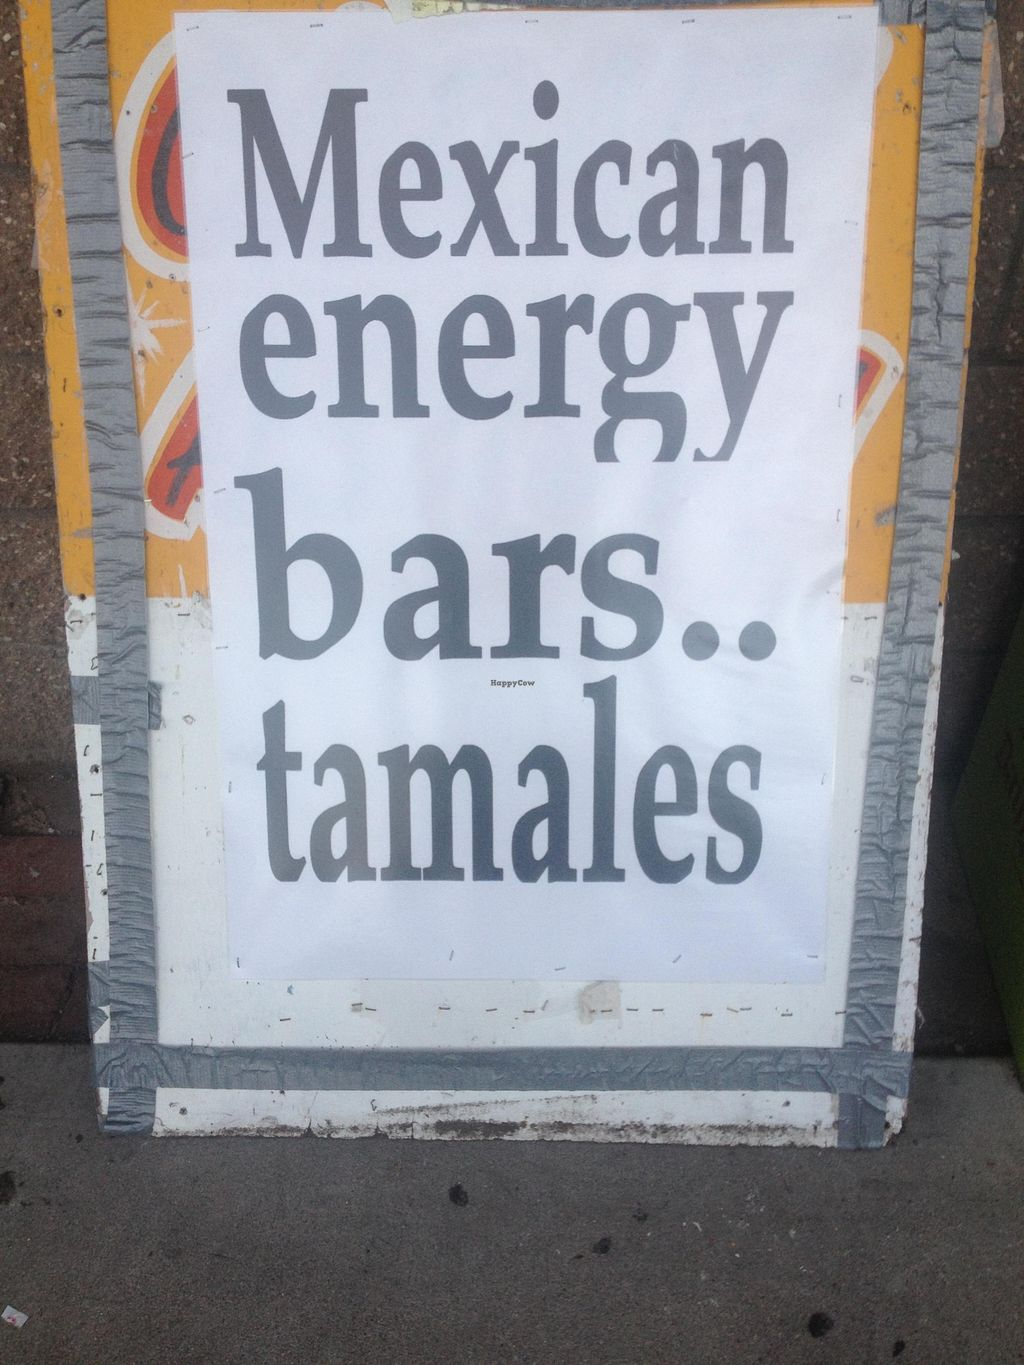 """Photo of Tanias 33 Dos Mundos  by <a href=""""/members/profile/vegan_ryan"""">vegan_ryan</a> <br/>Amusing sign out front <br/> December 13, 2015  - <a href='/contact/abuse/image/30534/128268'>Report</a>"""